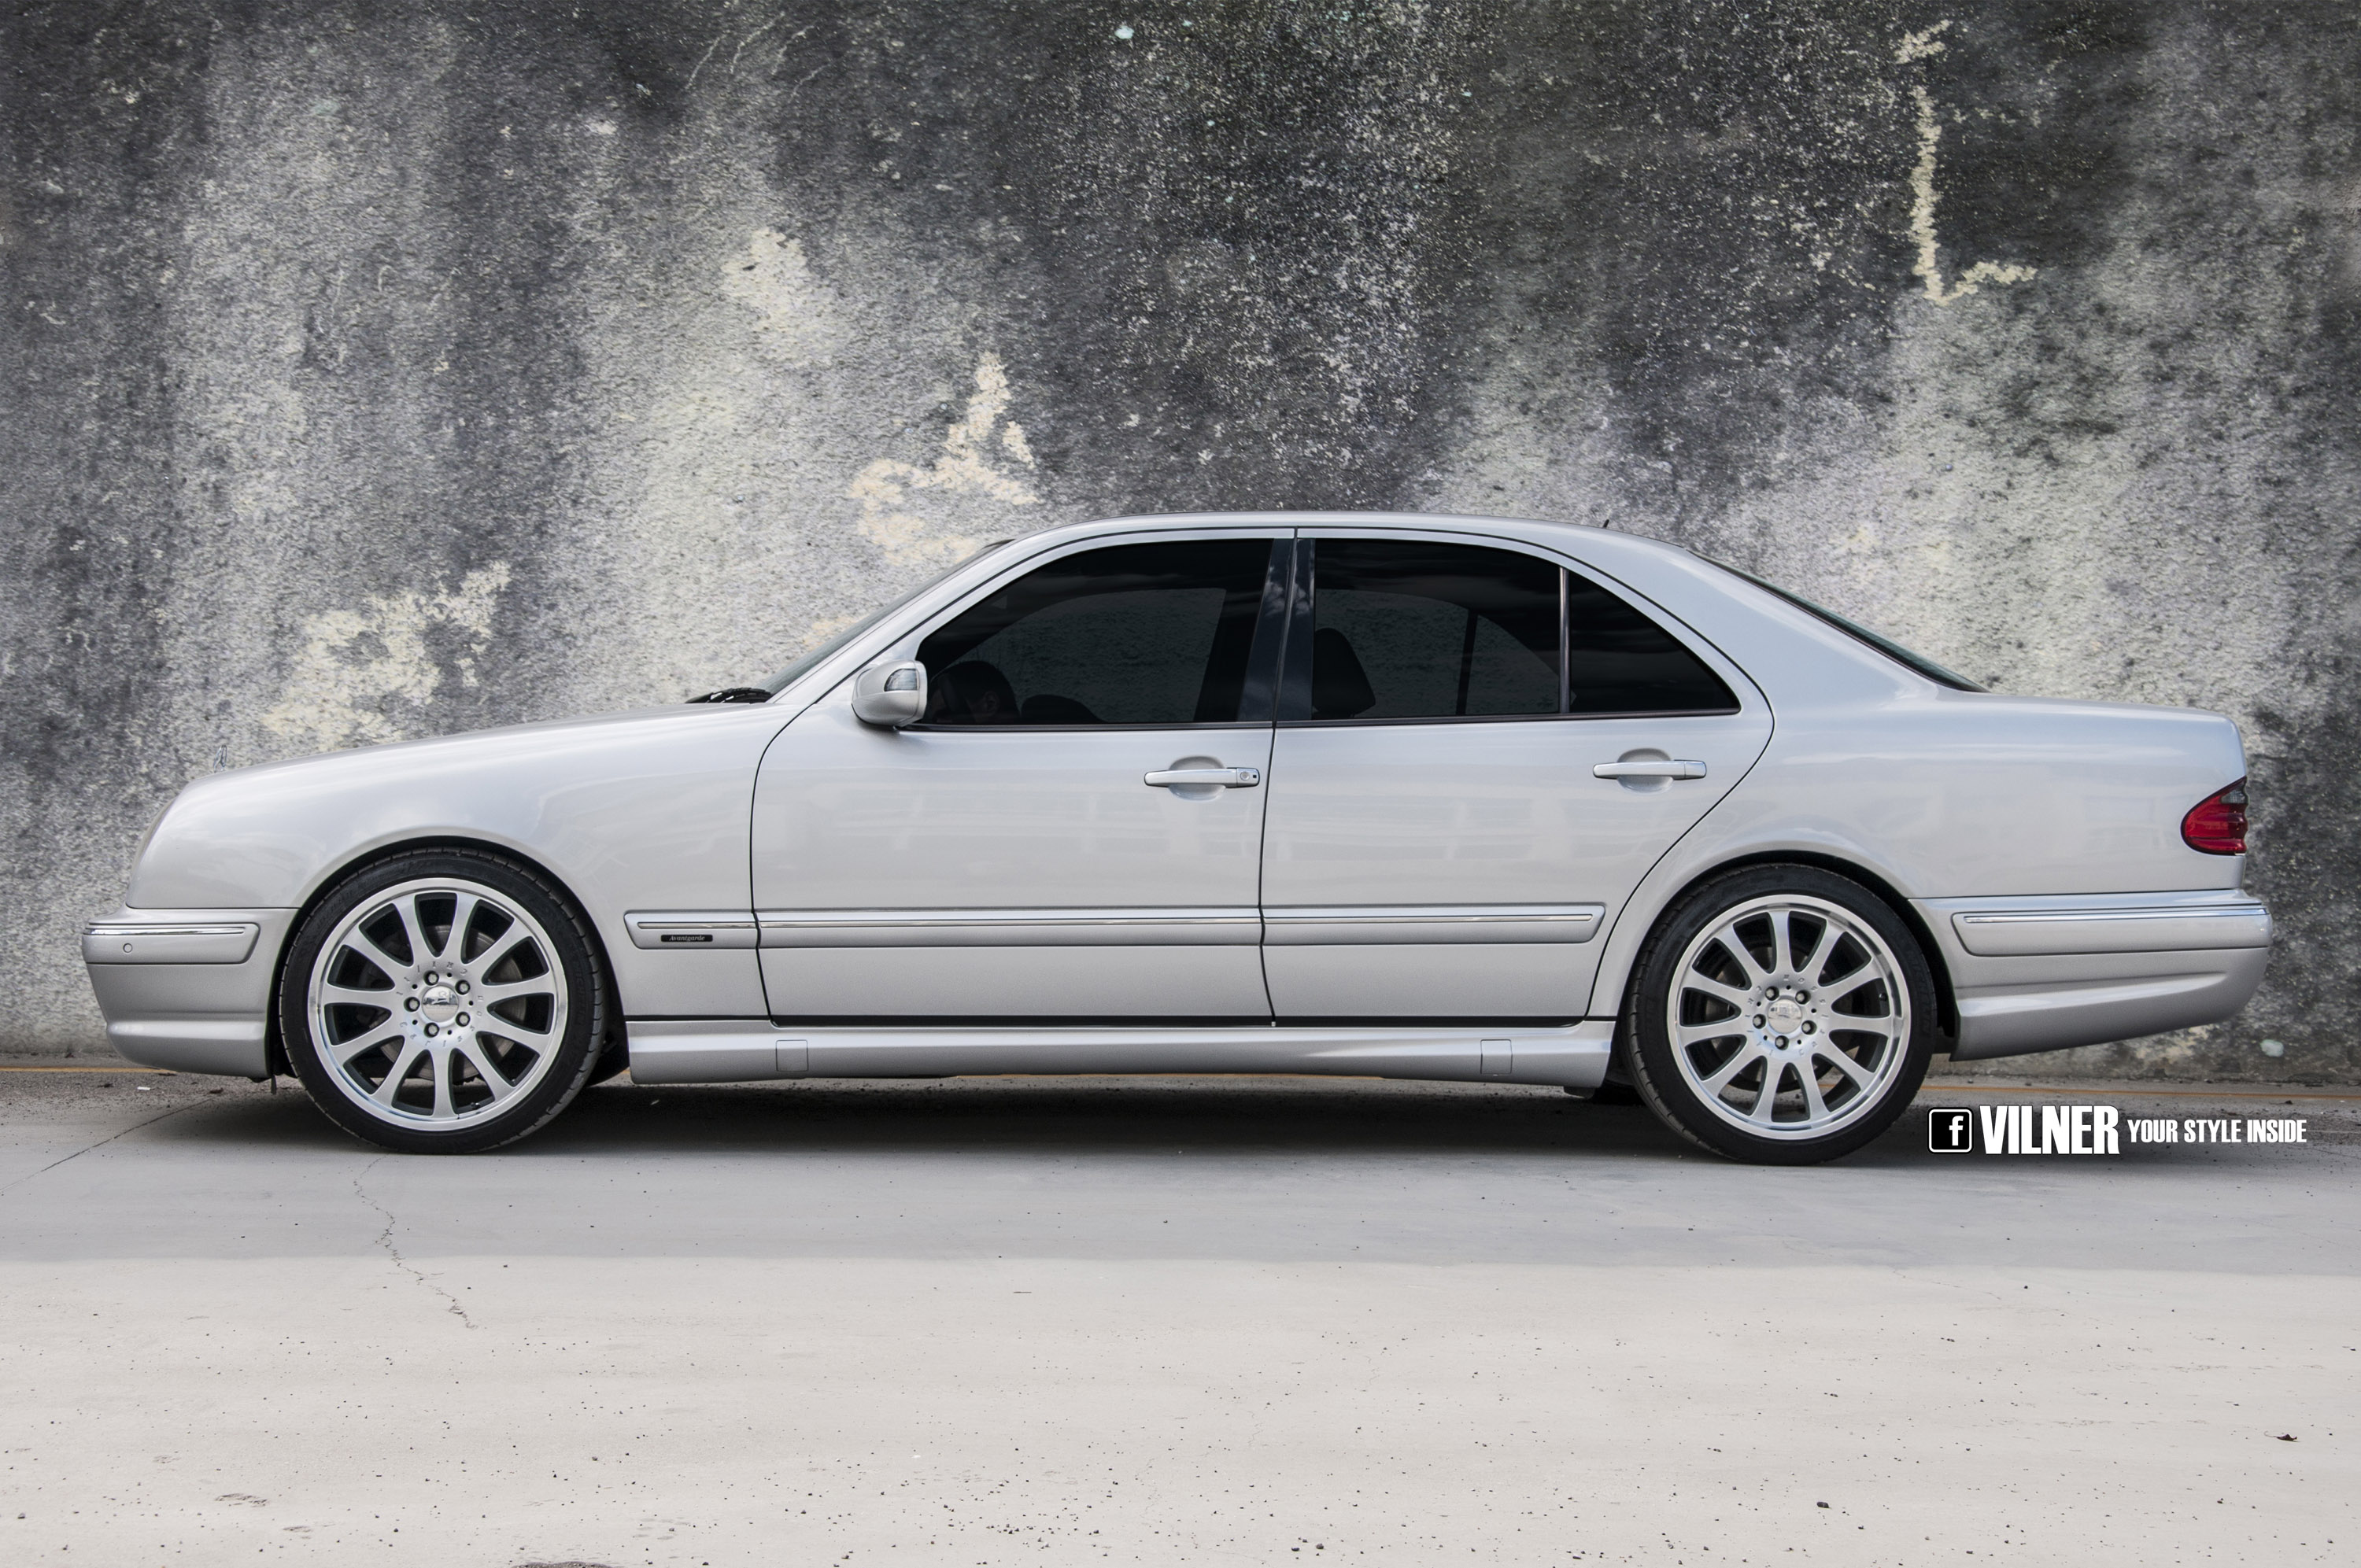 Mercedes w210 tuning 2 tuning cars -  Vilner Mercedes Benz E55 Amg 4matic 2 Of 22